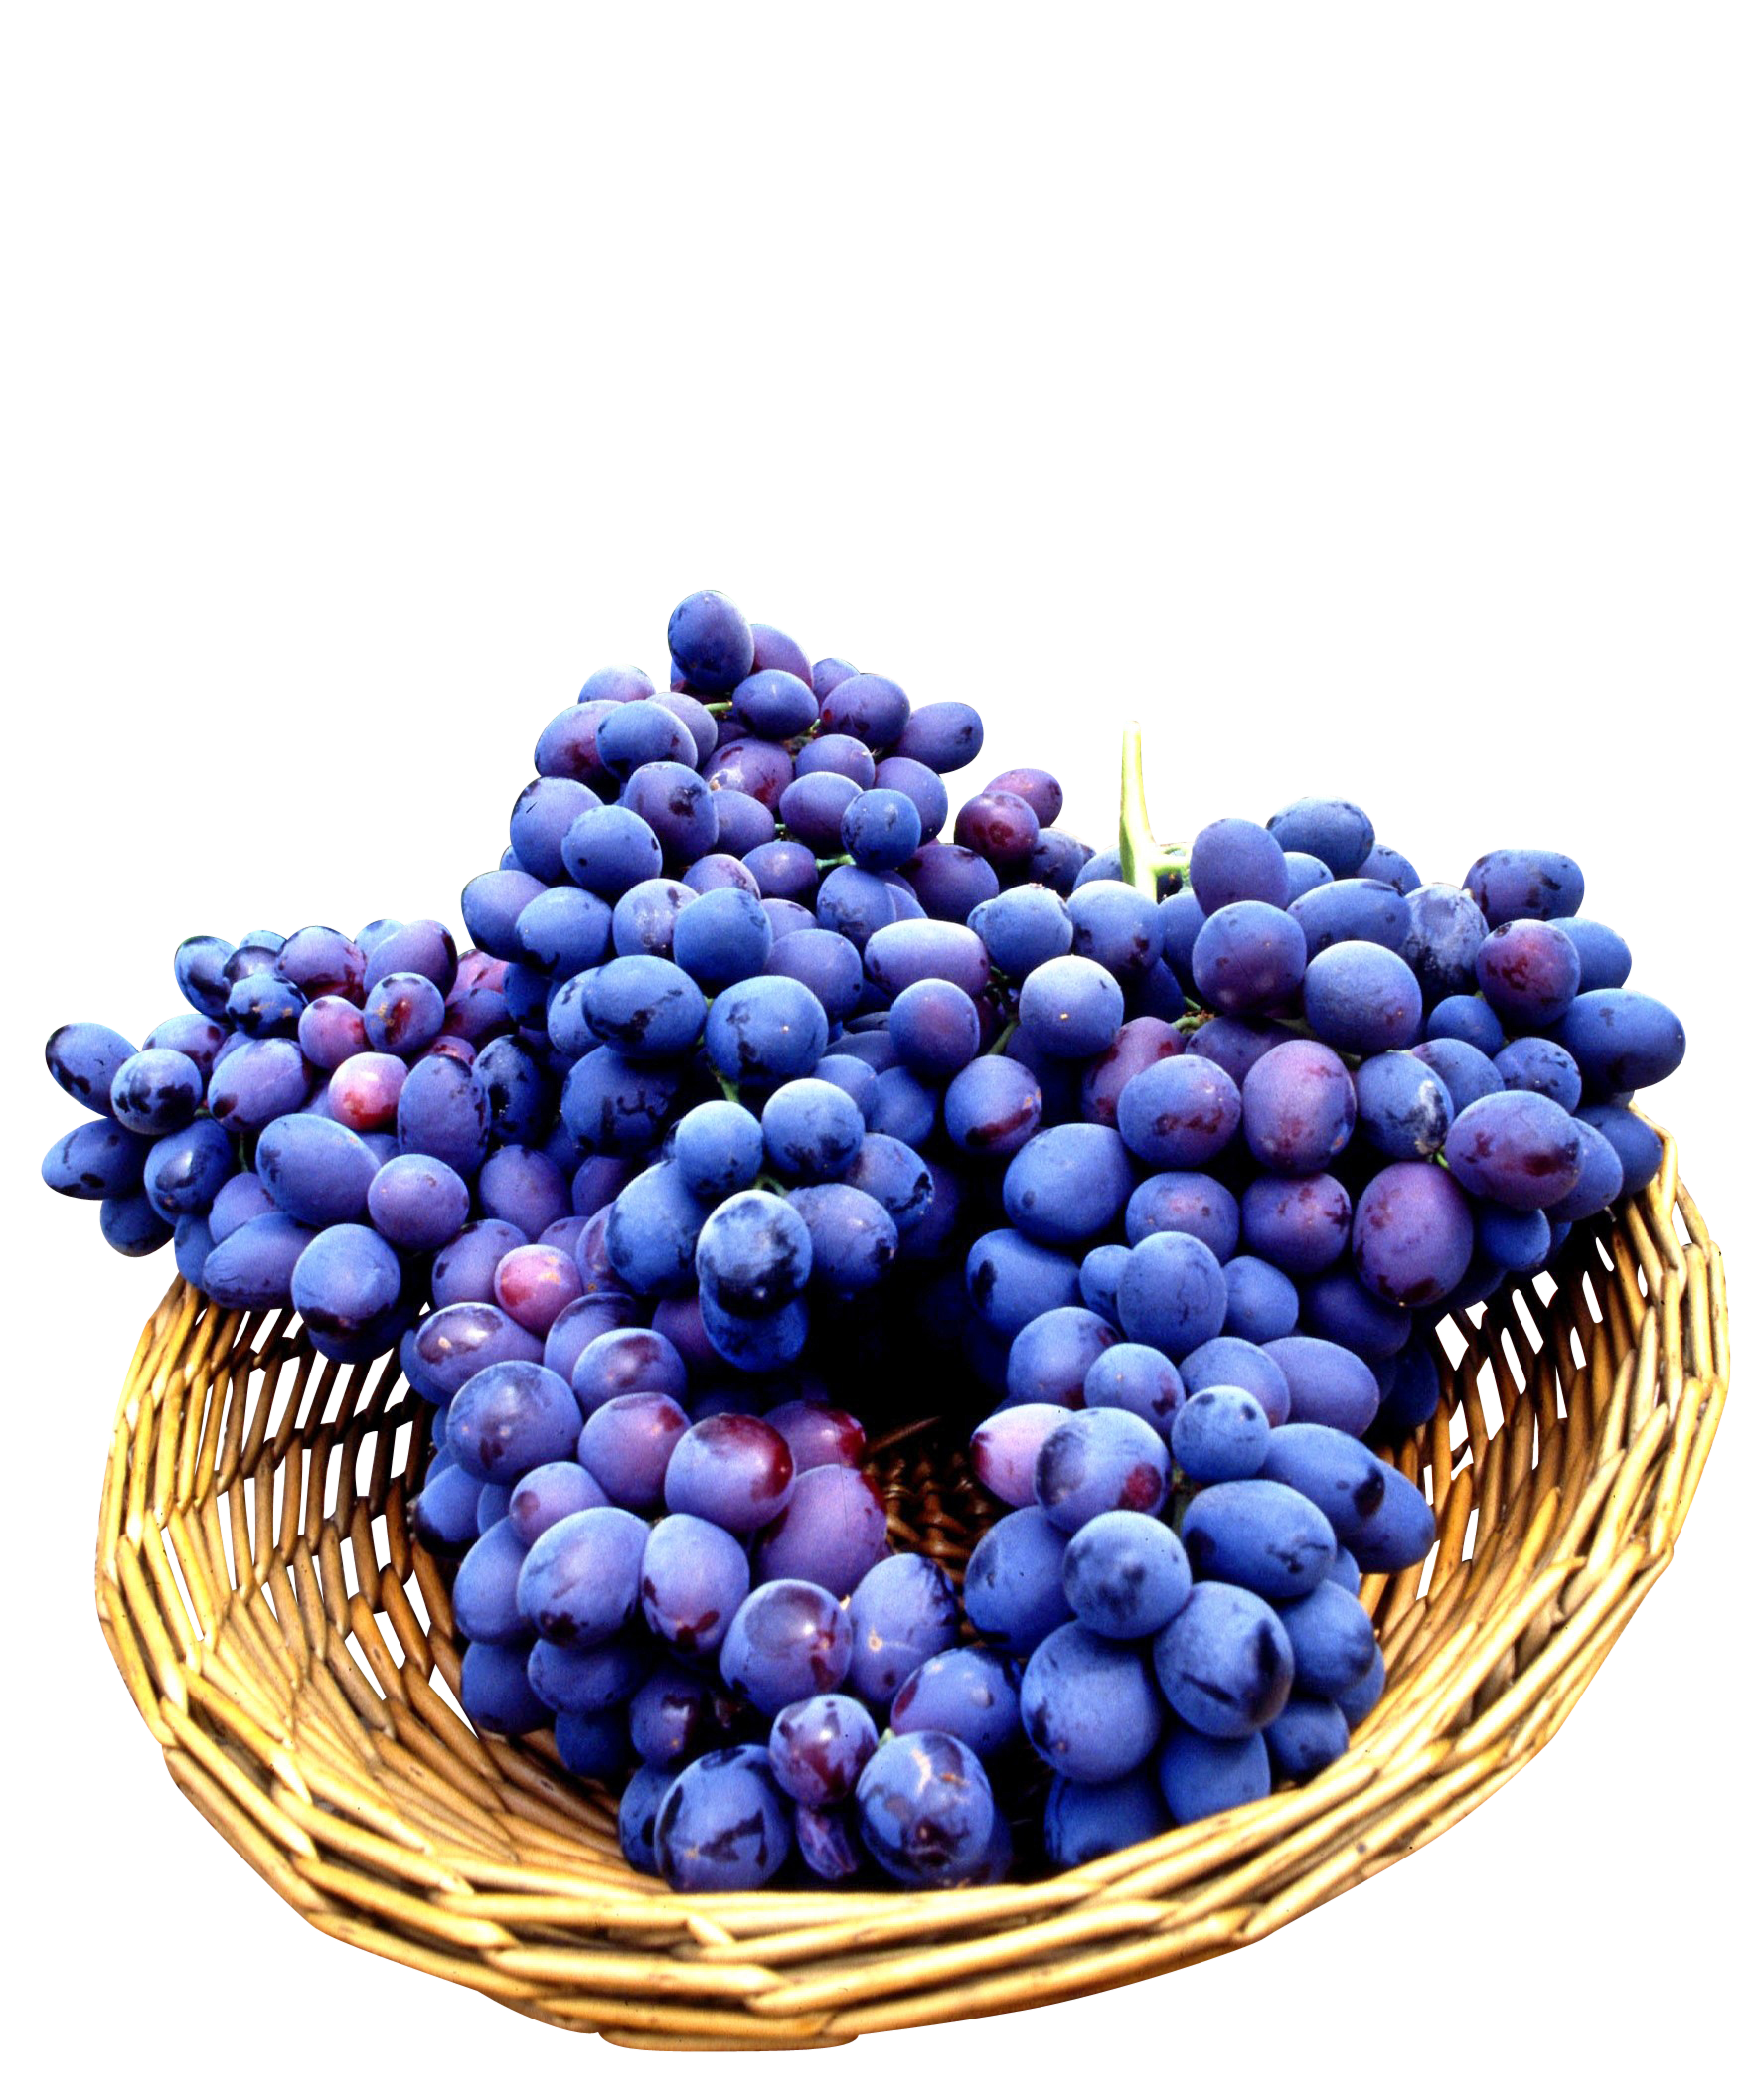 Seedless Grapes in basket PNG Image